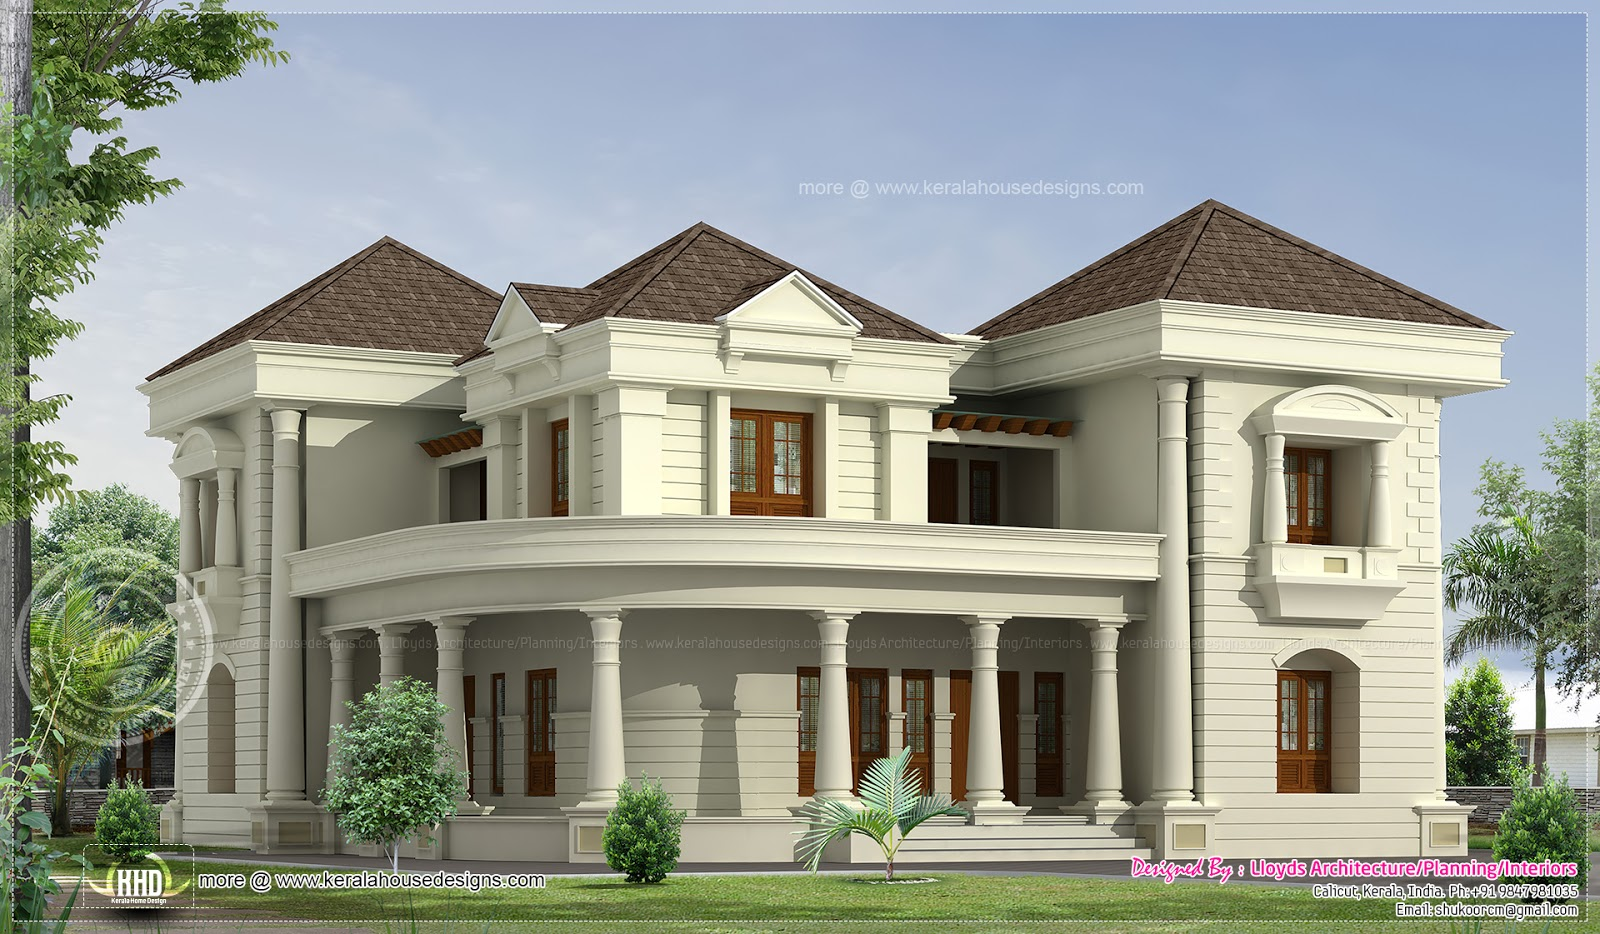 square yards designed by architect shukoor c manapat calicut kerala